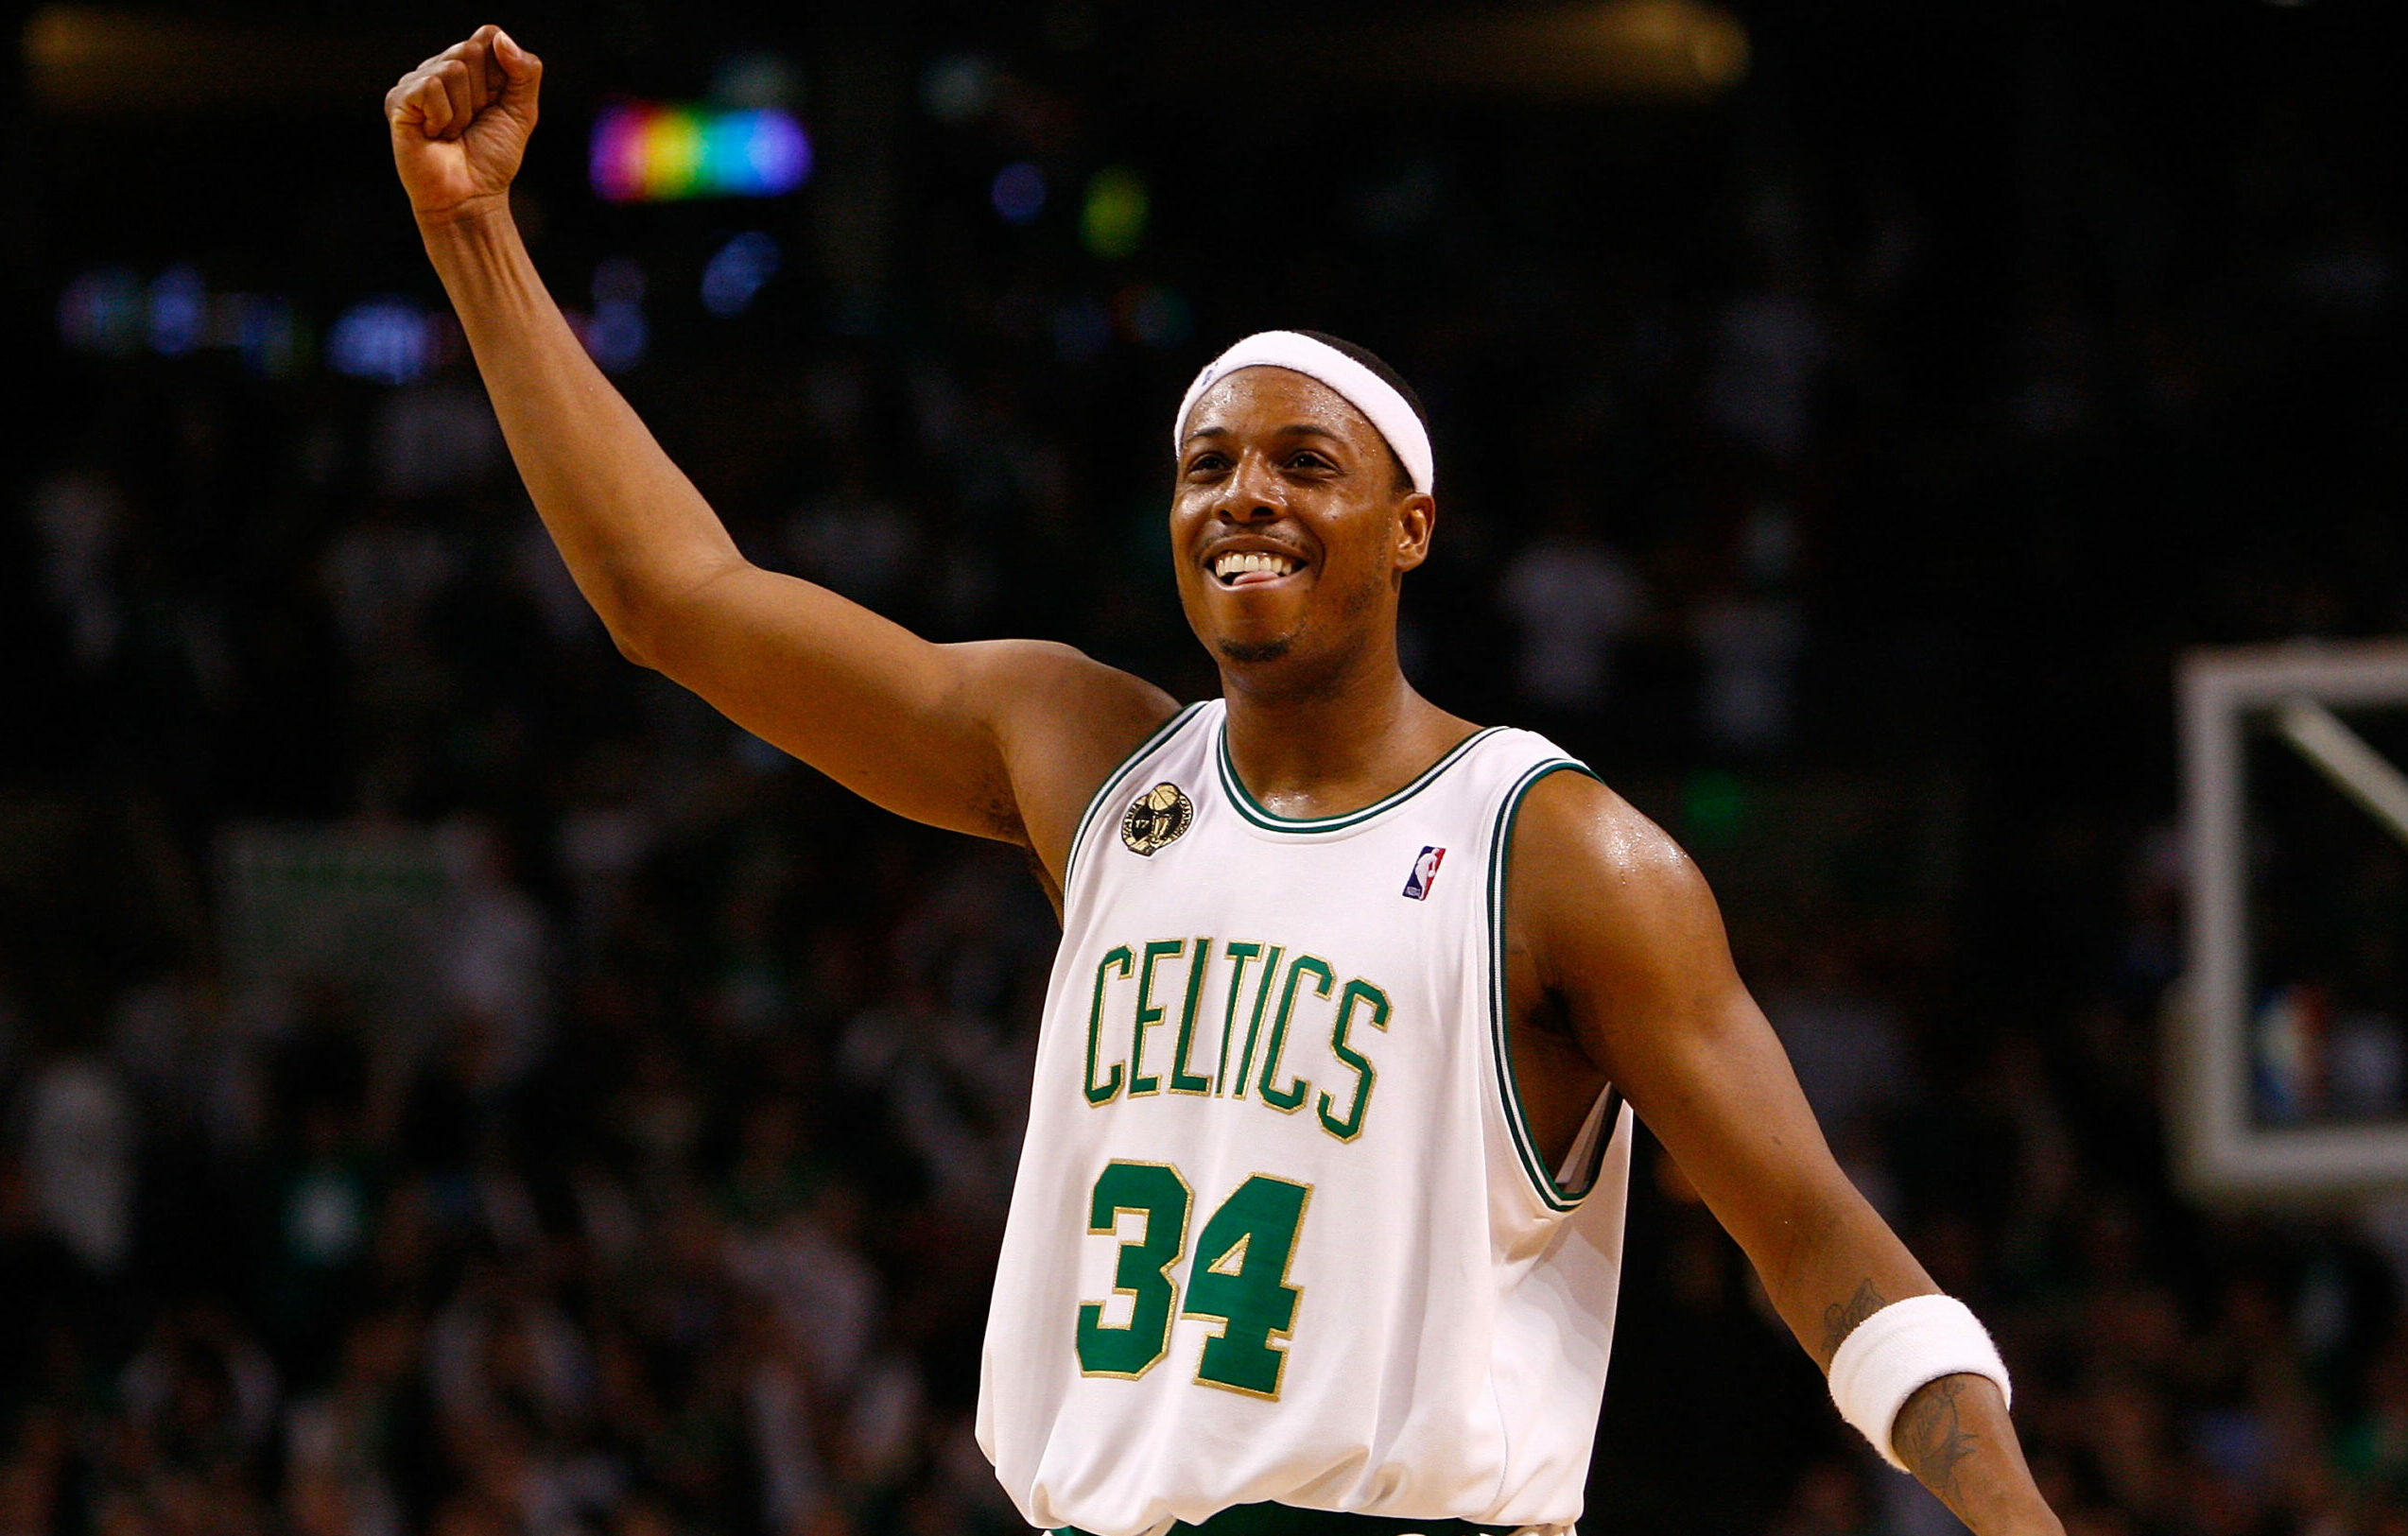 Paul Pierce, Chris Bosh and Chris Webber headline 2021 Hall of Fame class